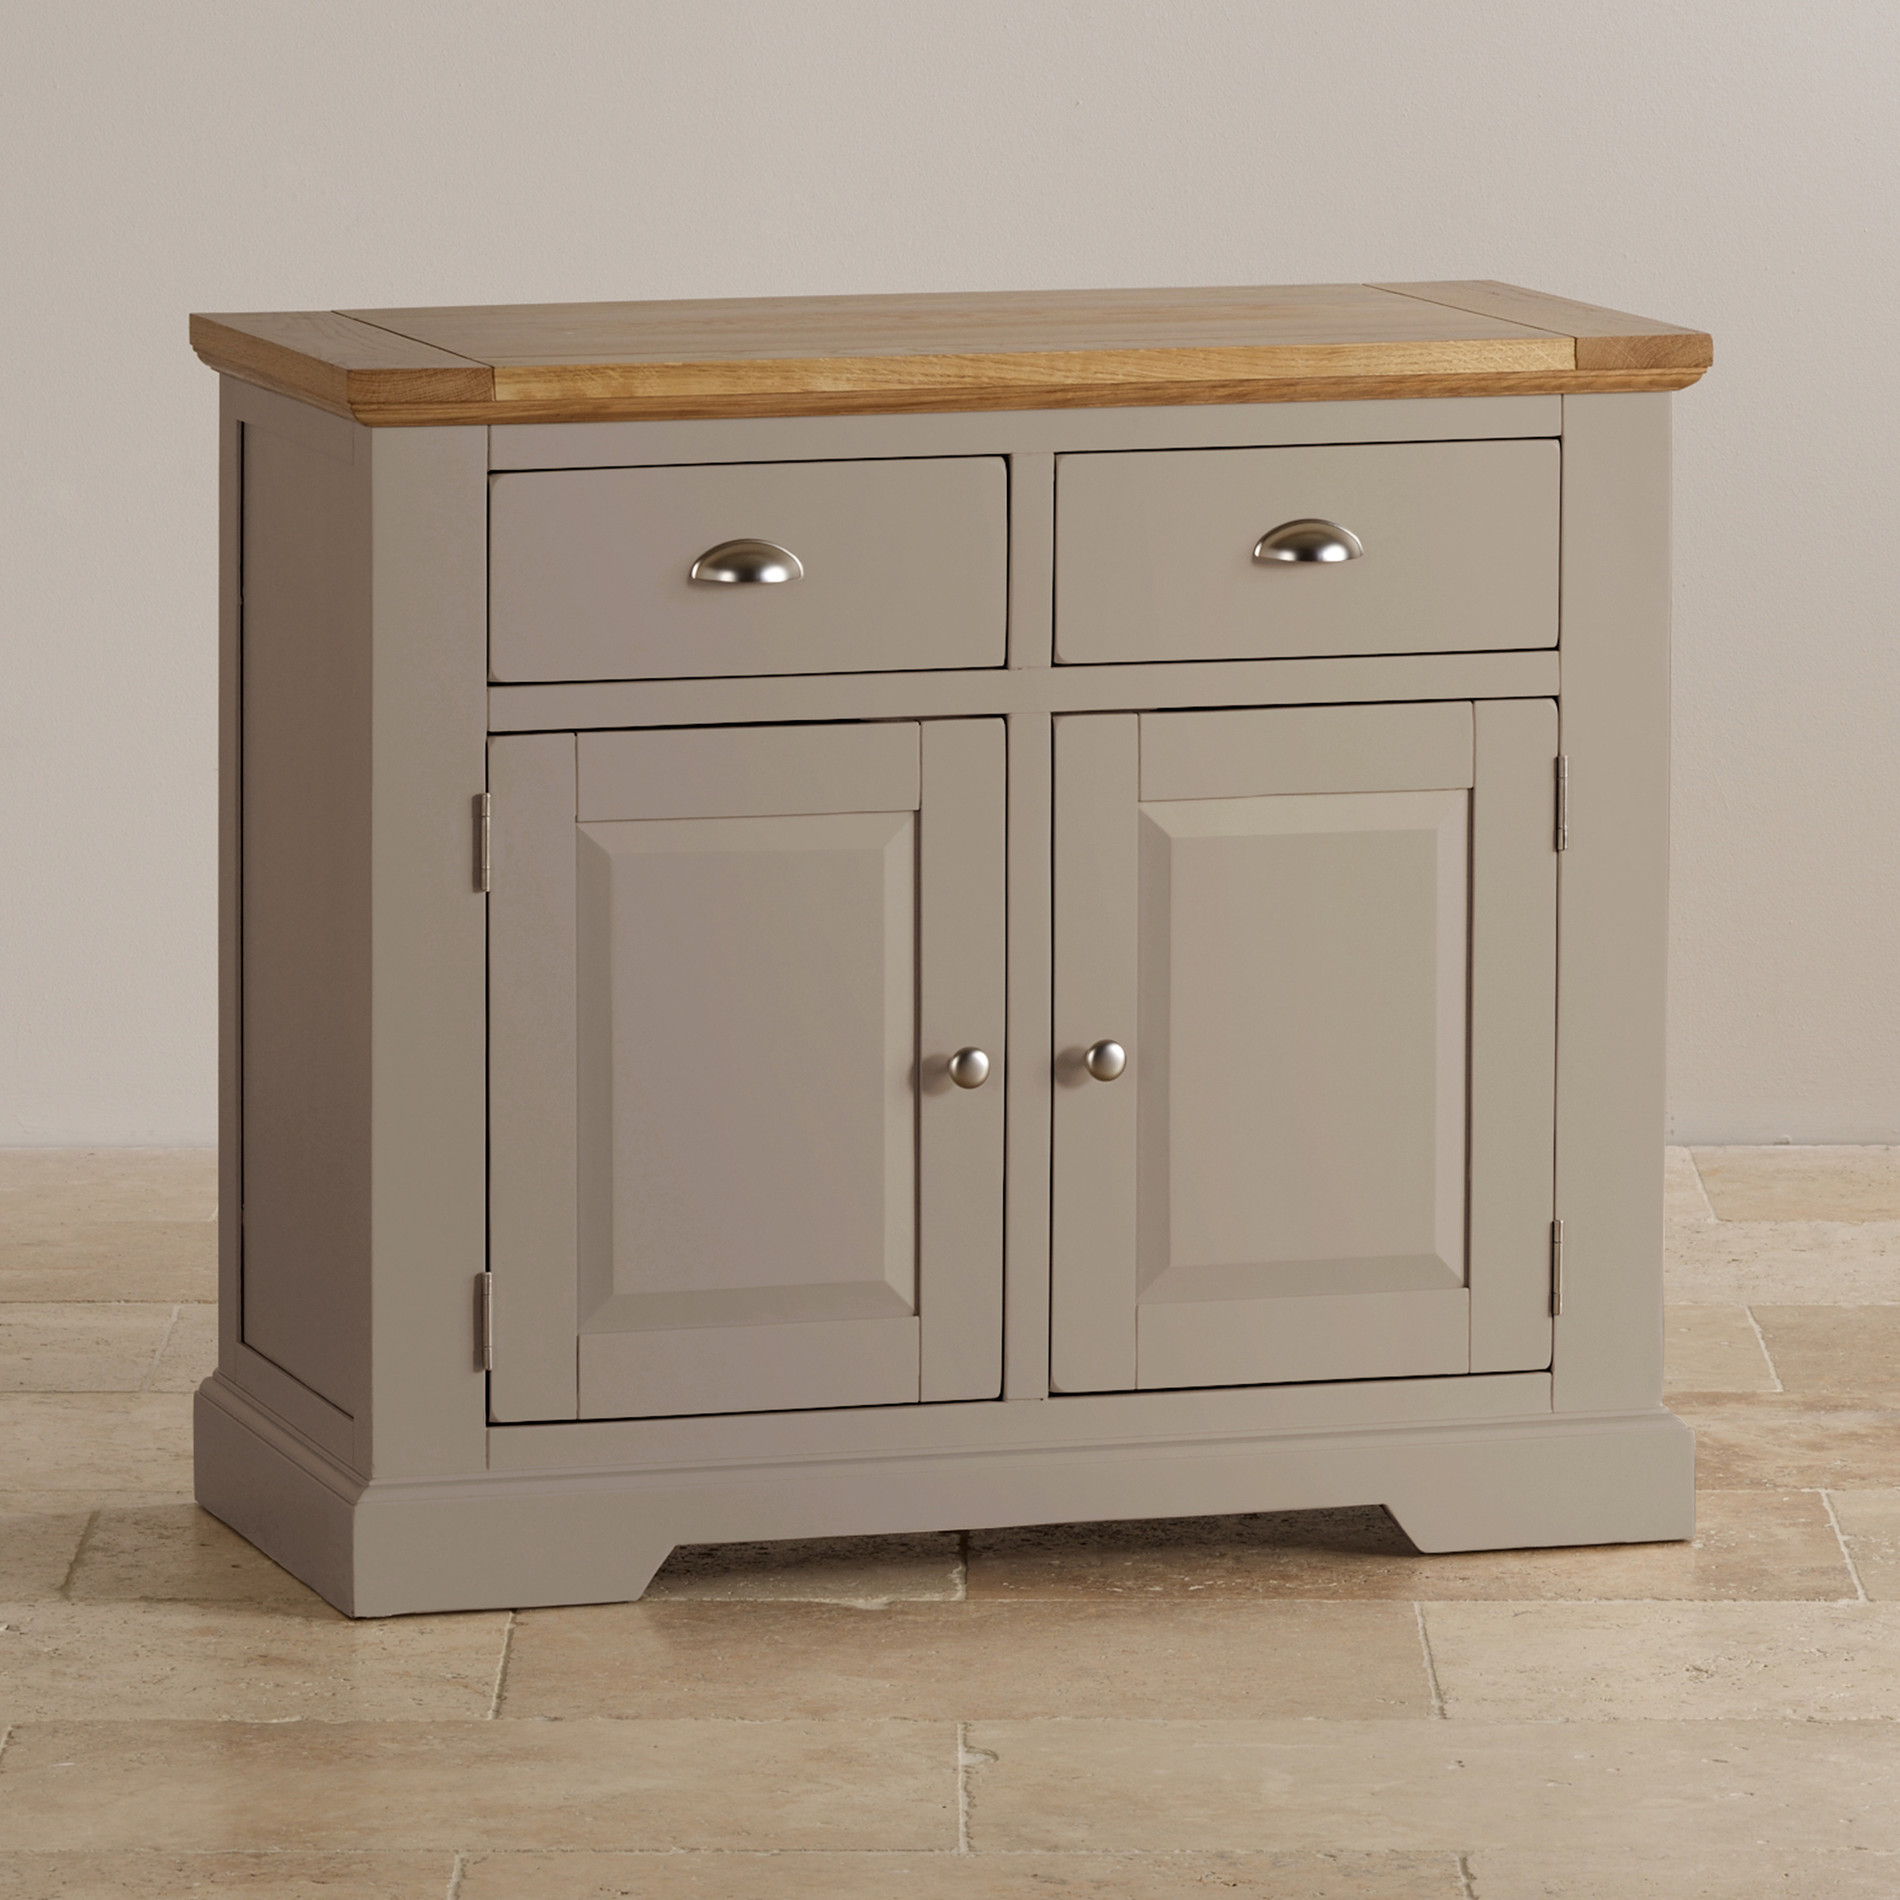 Dining Room Sets For Less Natural Oak And Light Grey Painted Small Sideboard